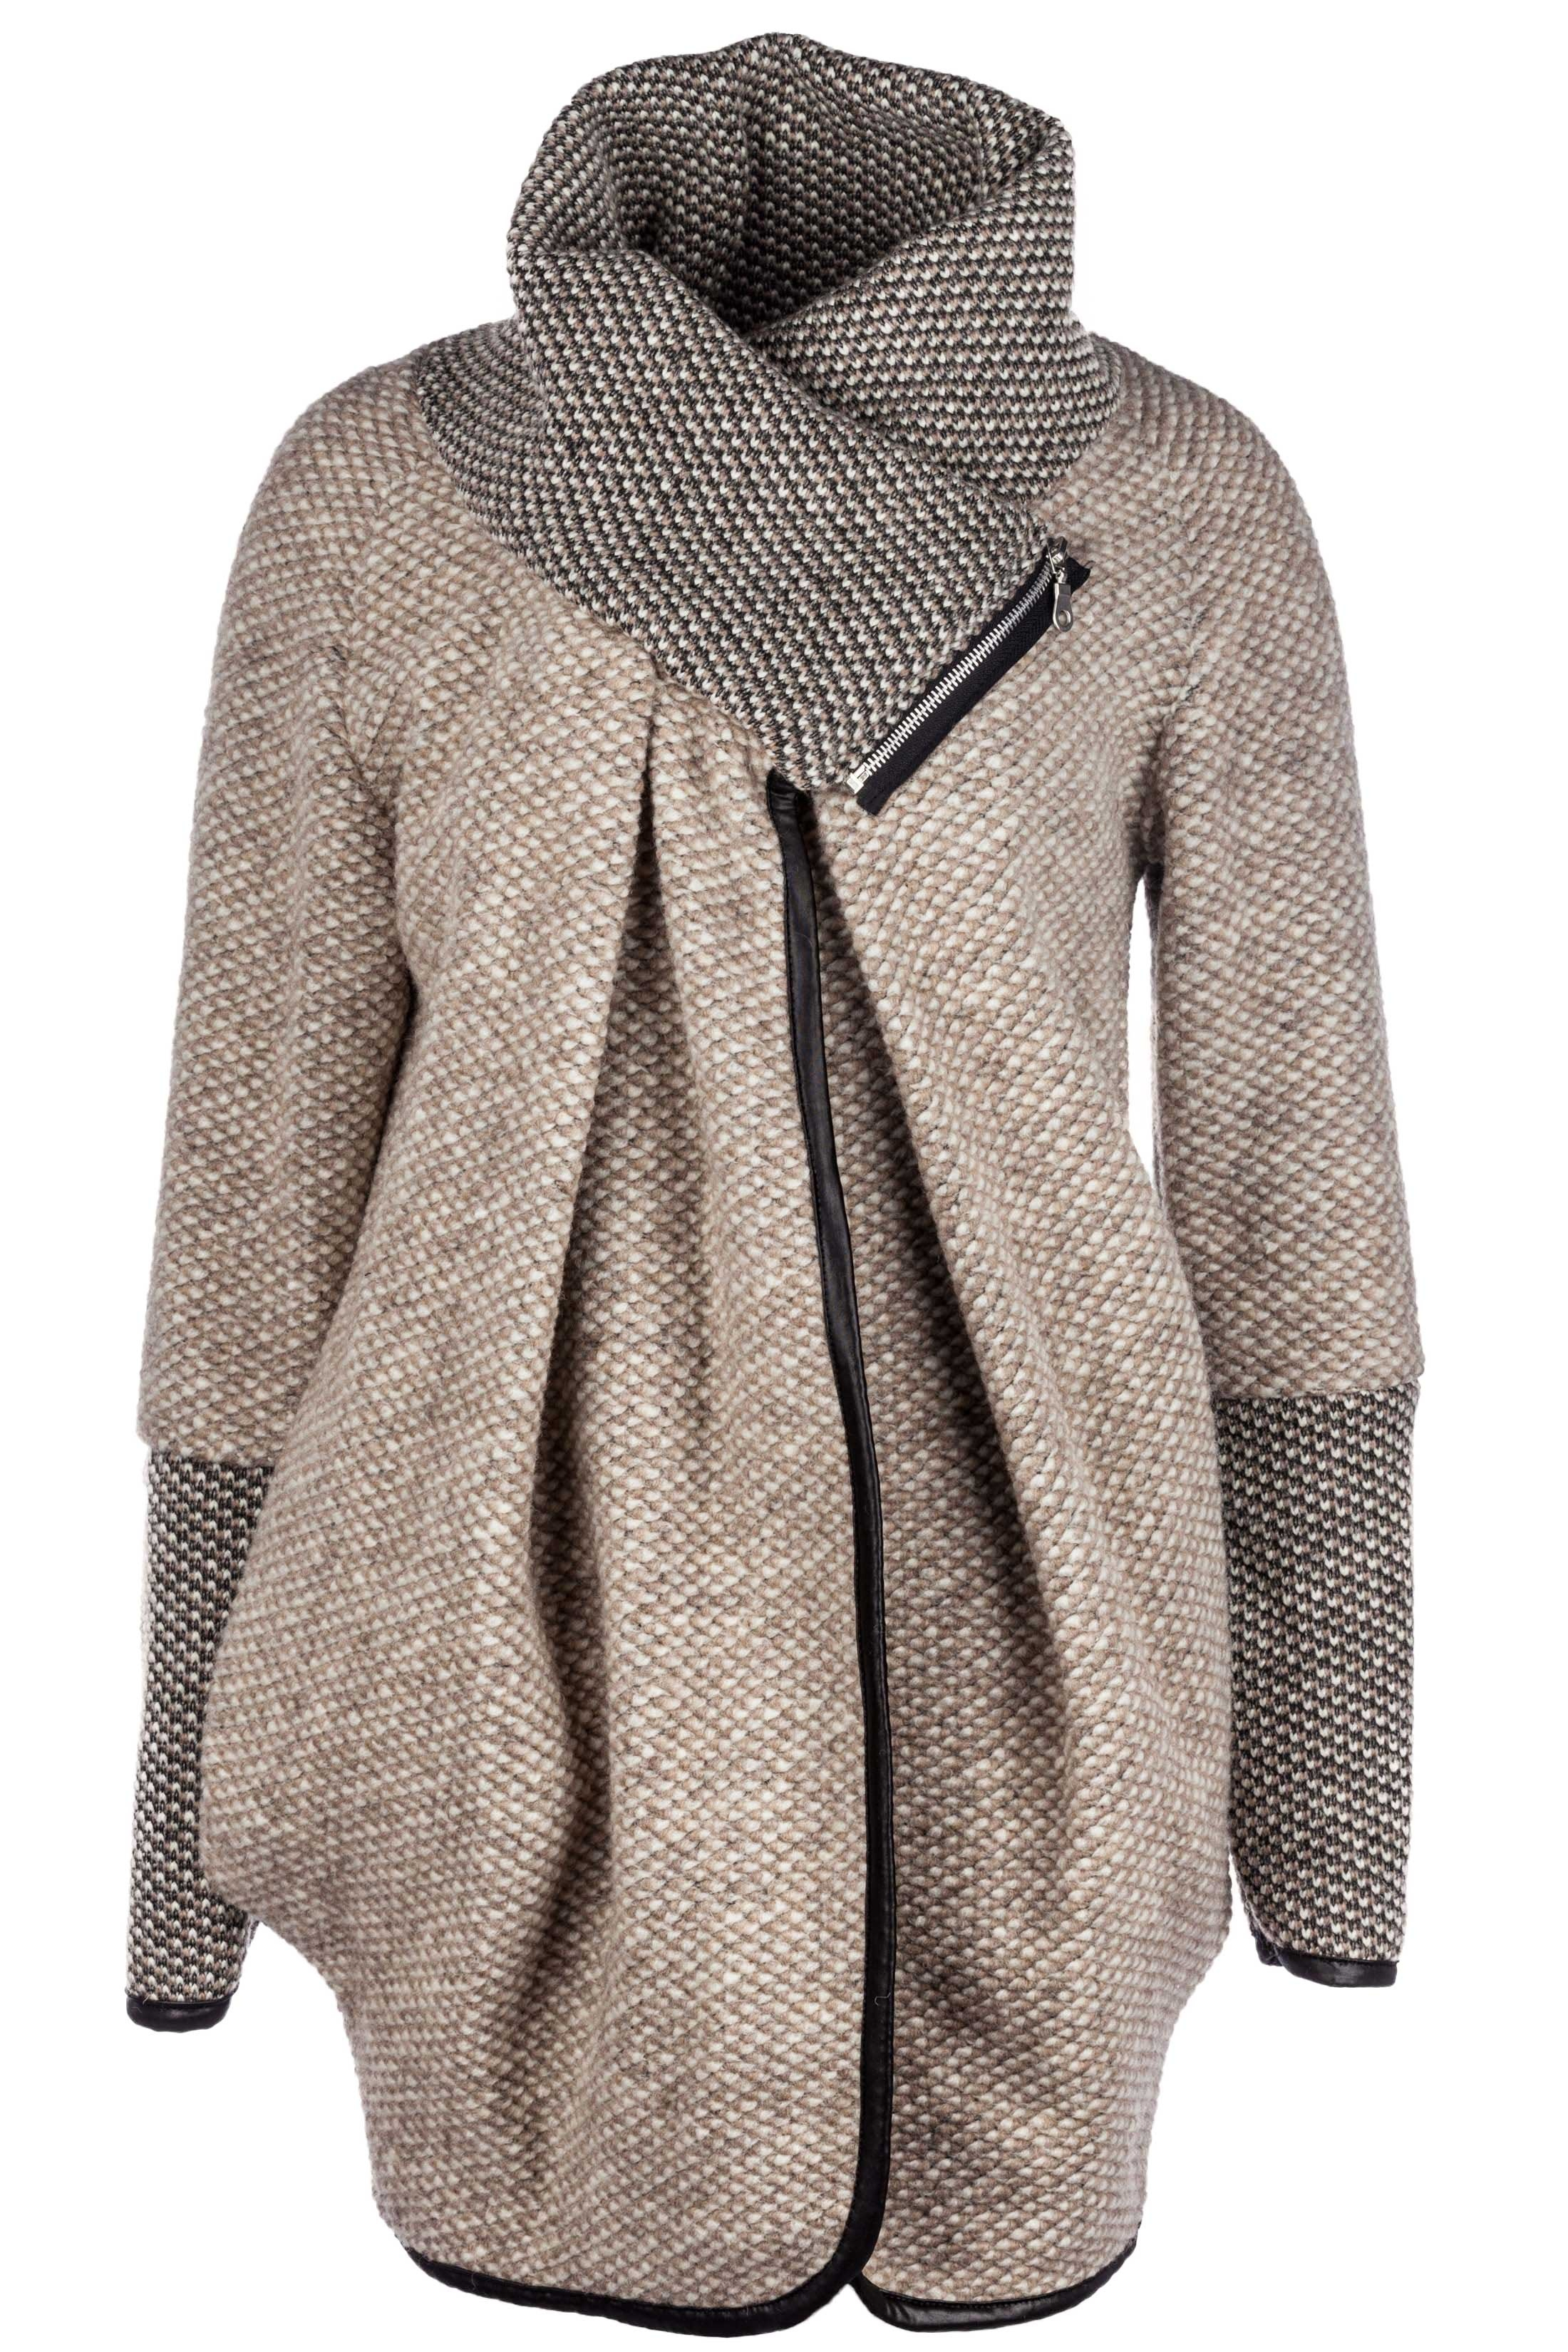 best price factory authentic superior quality Gilet laine grosse maille femme | Lafermemaillard